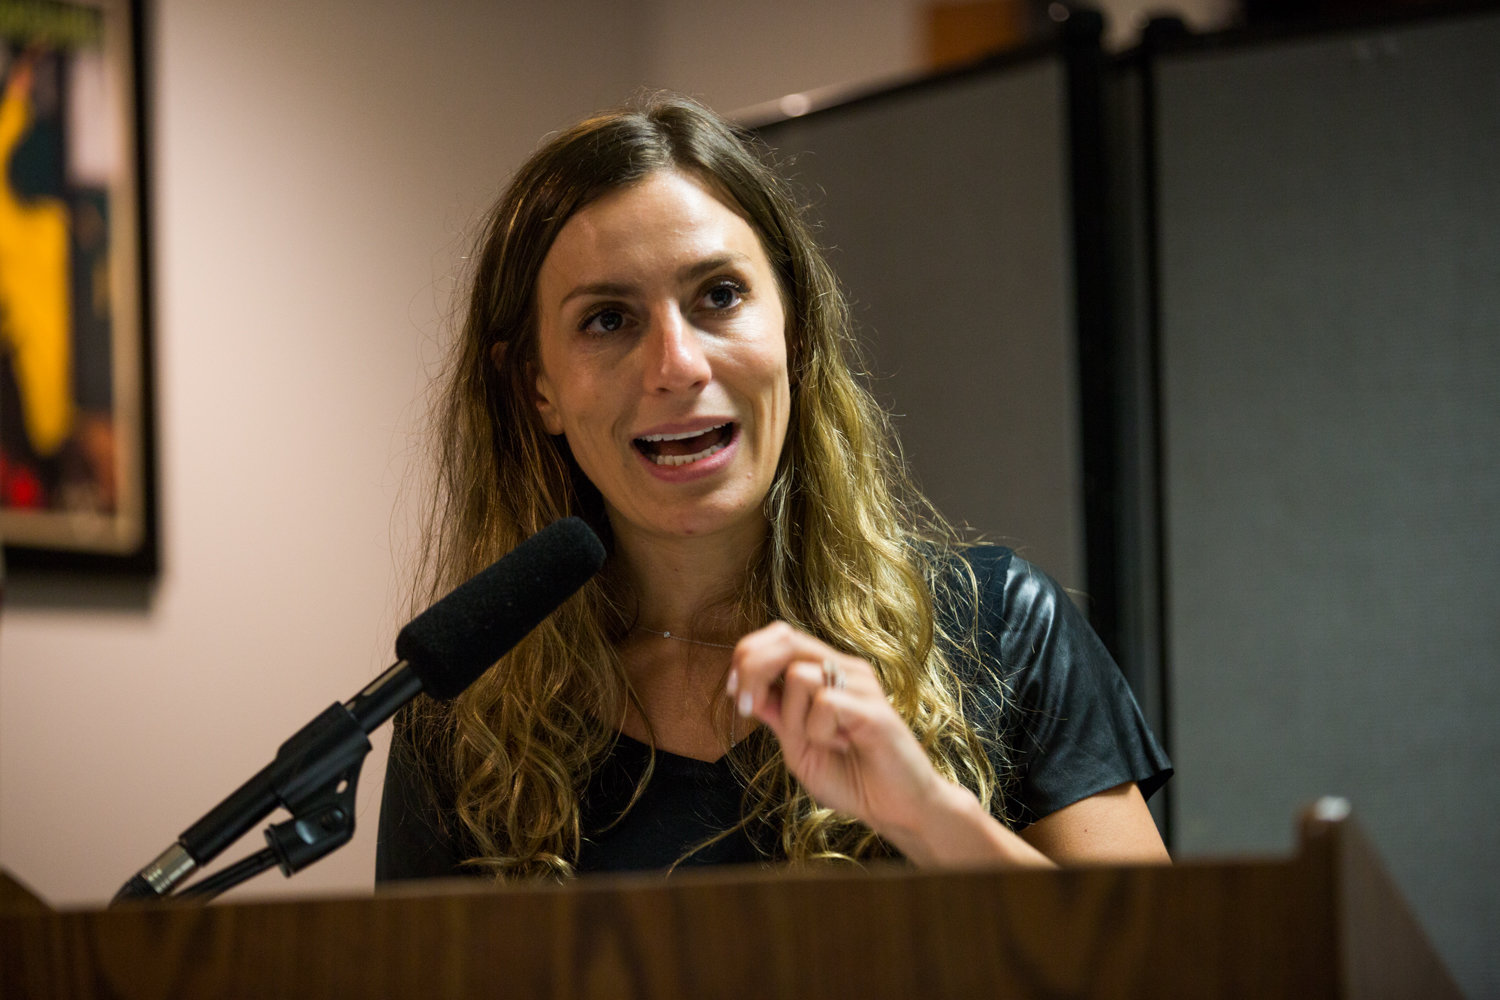 One of state Sen. Alessandra Biaggi's landmark legislative victories was the Child Victims Act, which she sponsored and was subsequently signed into law. It extends the state's statute of limitations, and since its passage last month, there is a one-year grace period for victims to file lawsuits regardless of when the abuse occurred.